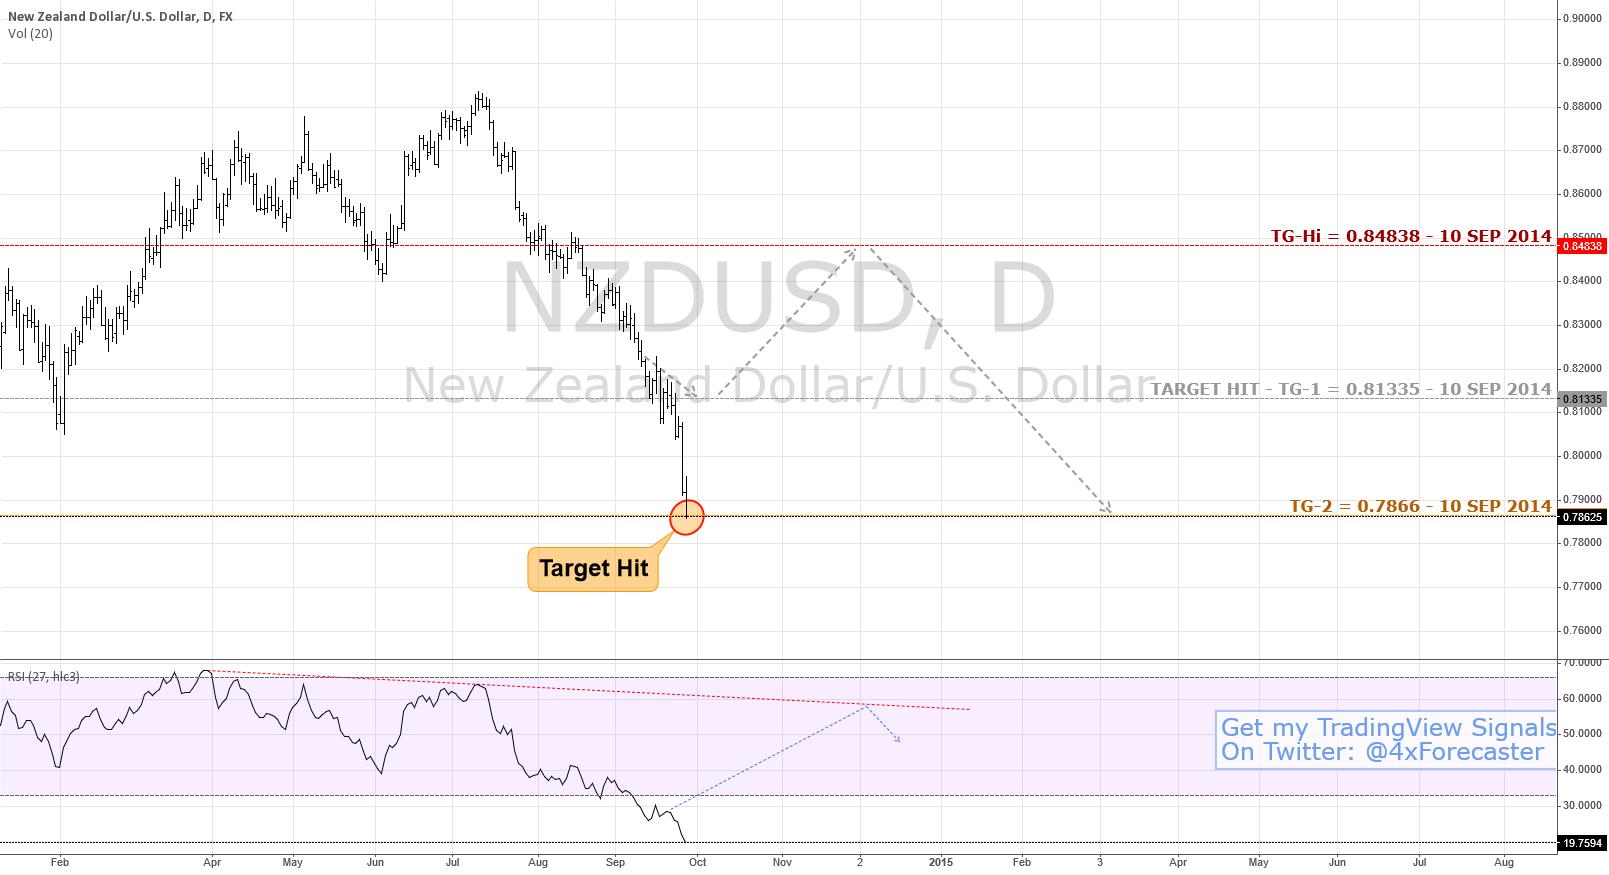 #Kiwi Moves Hit TG-2 Target; Ignored TG-Hi | #Forex $NZD $USD